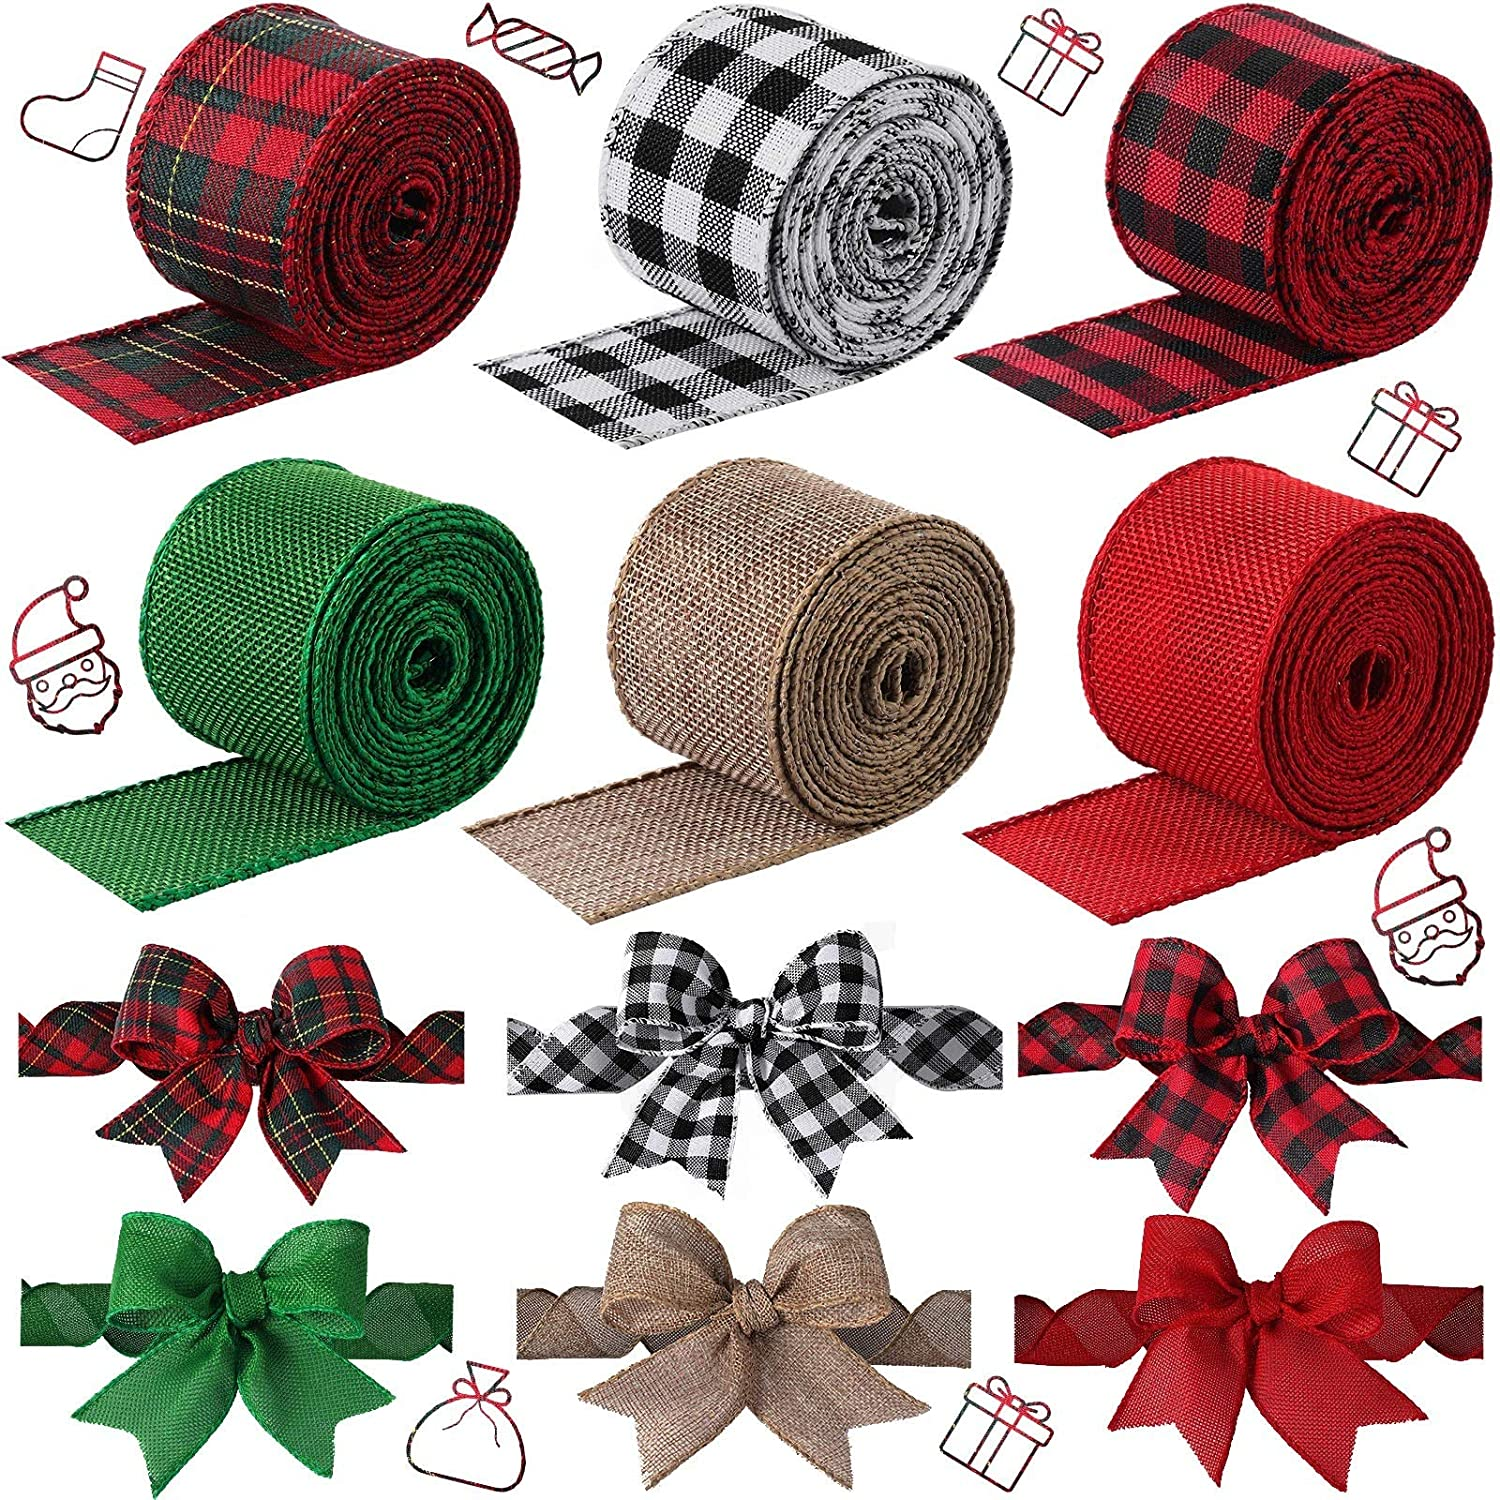 6 Rolls 2 Inches Wired Burlap Ribbon Christmas Wired Edge Ribbons Multi-Color Plaid Ribbon for Christmas Decoration DIY Wrapping Wedding Floral Bows Crafts, Totally 32 Yards